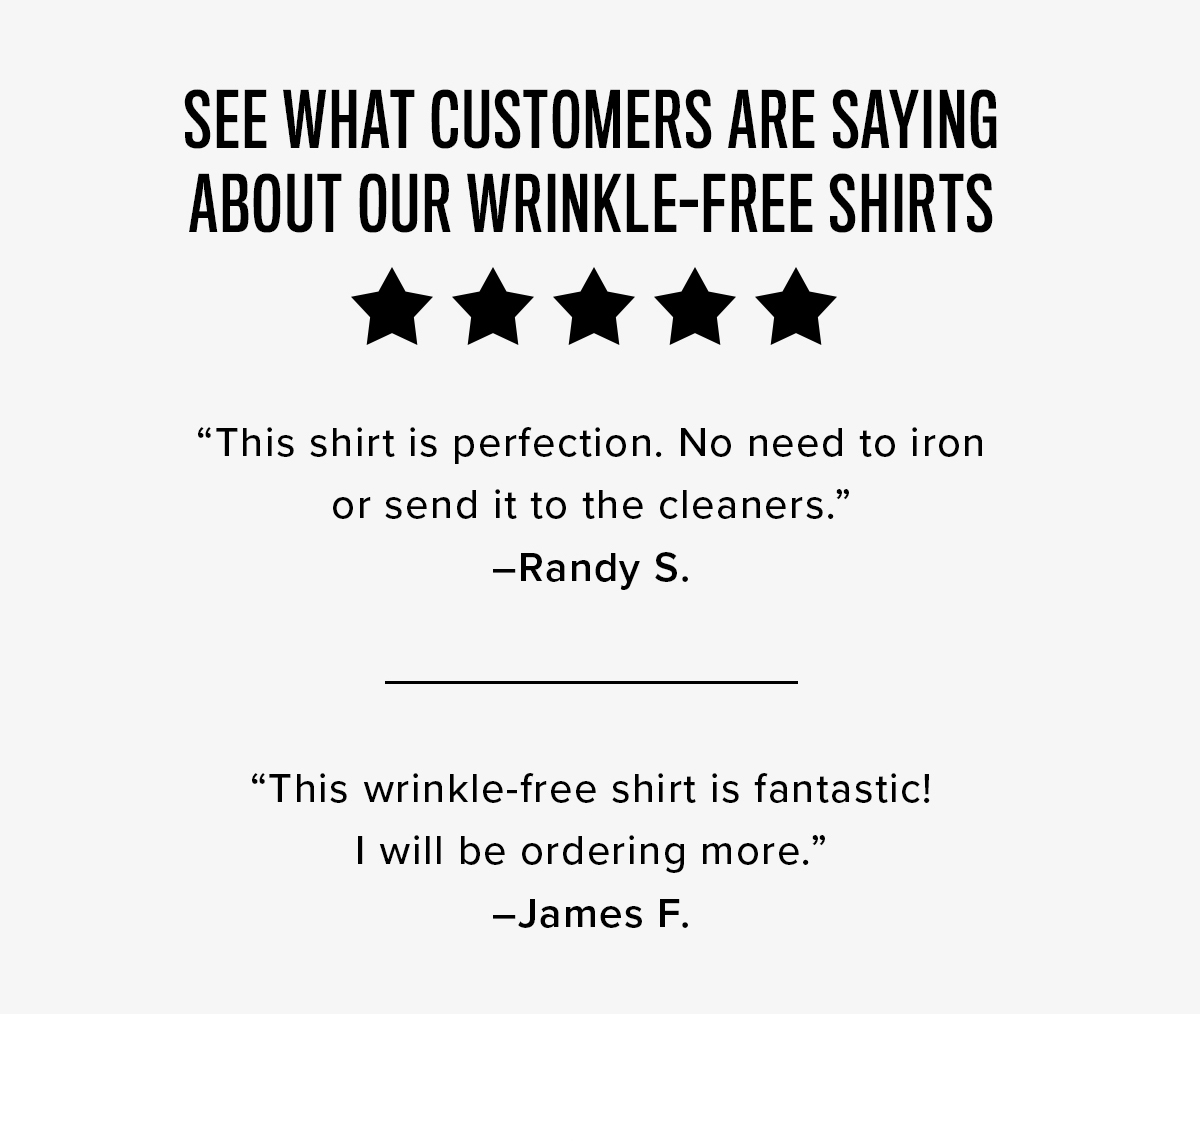 SEE WHAT CUSTOMERS ARE SAYING ABOUT OUR WRINKLE-FREE SHIRTS